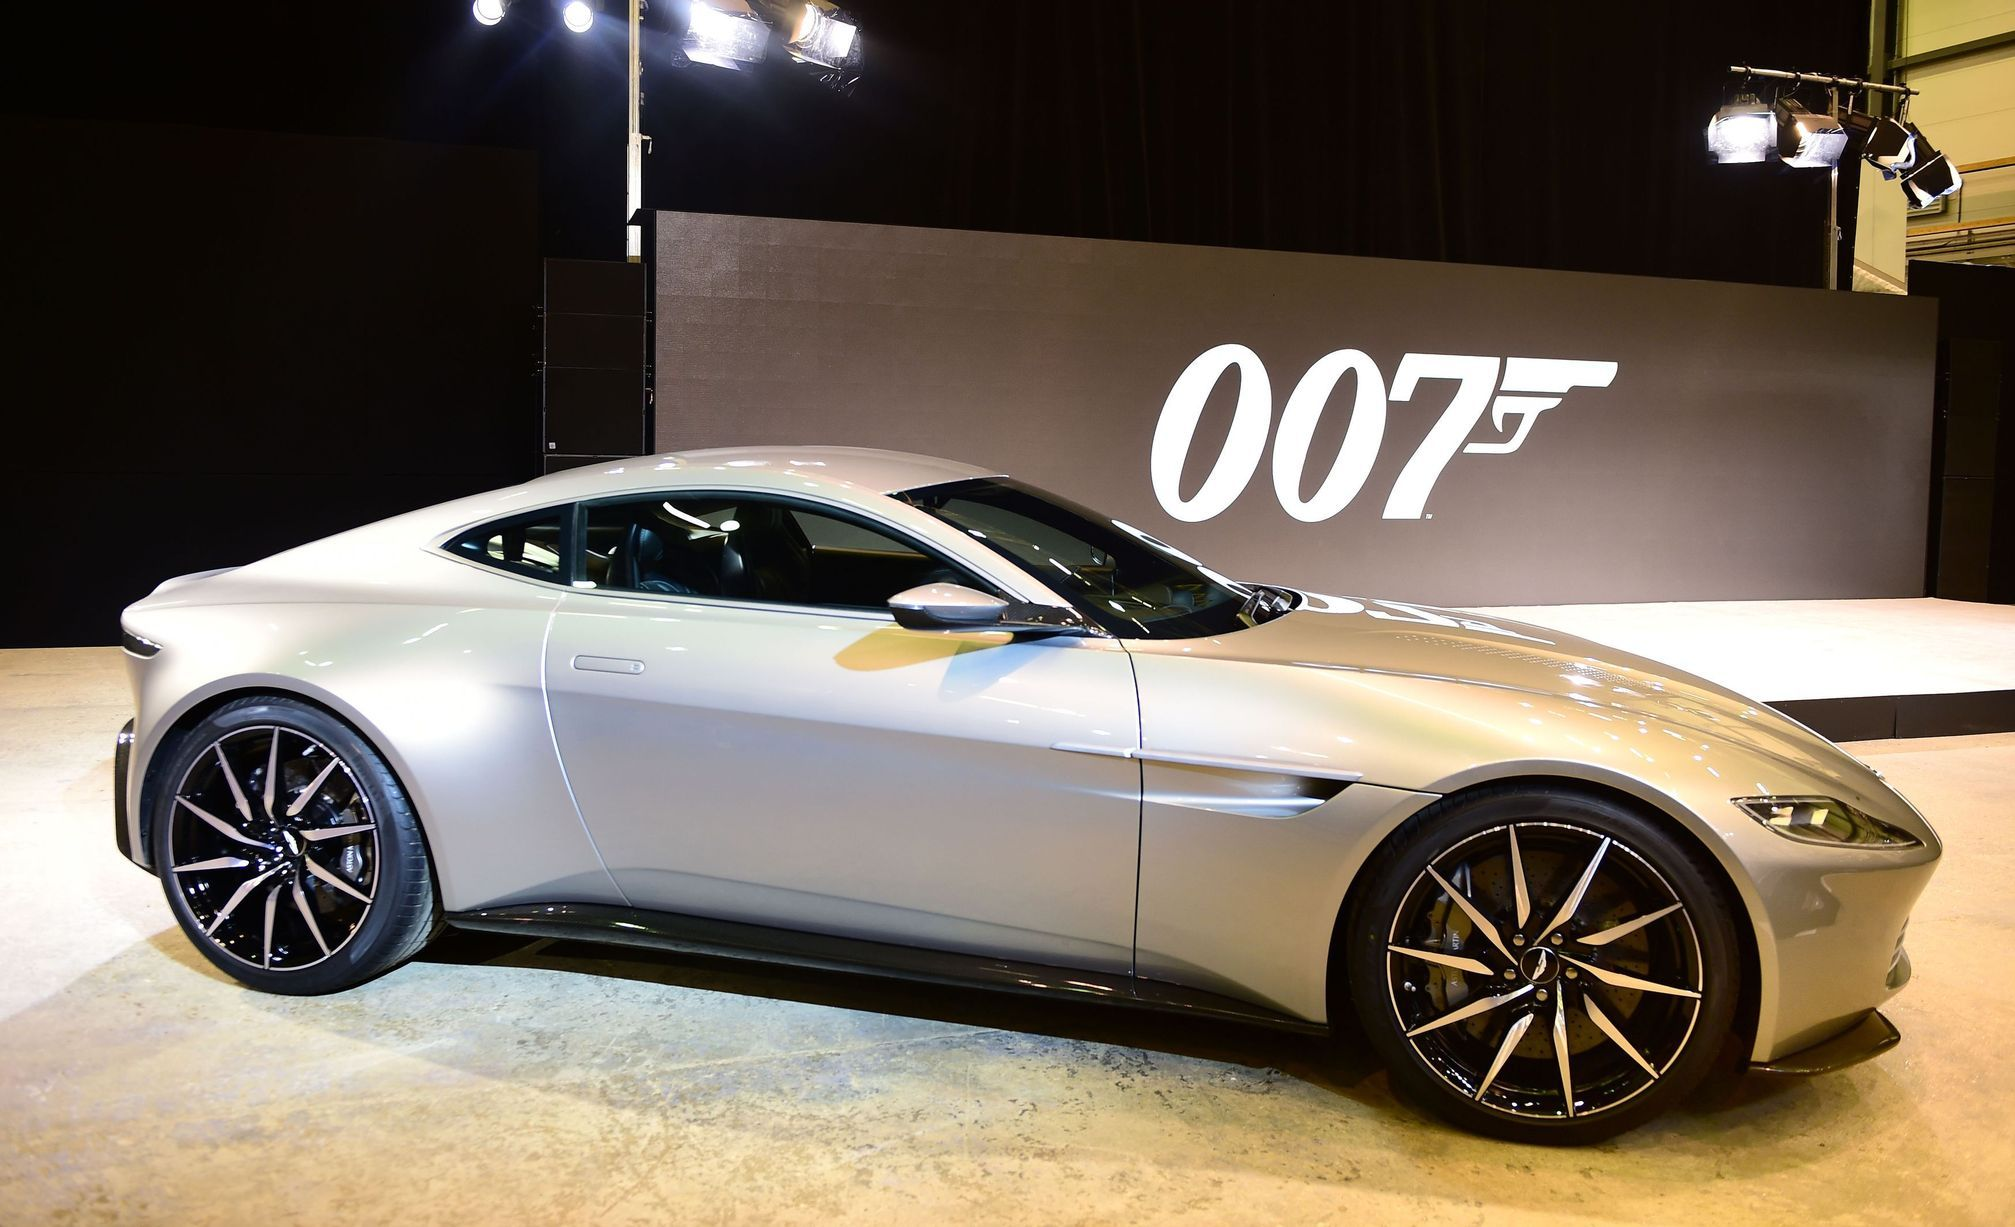 the aston martin db10 at the james bond spectre event at pinewood